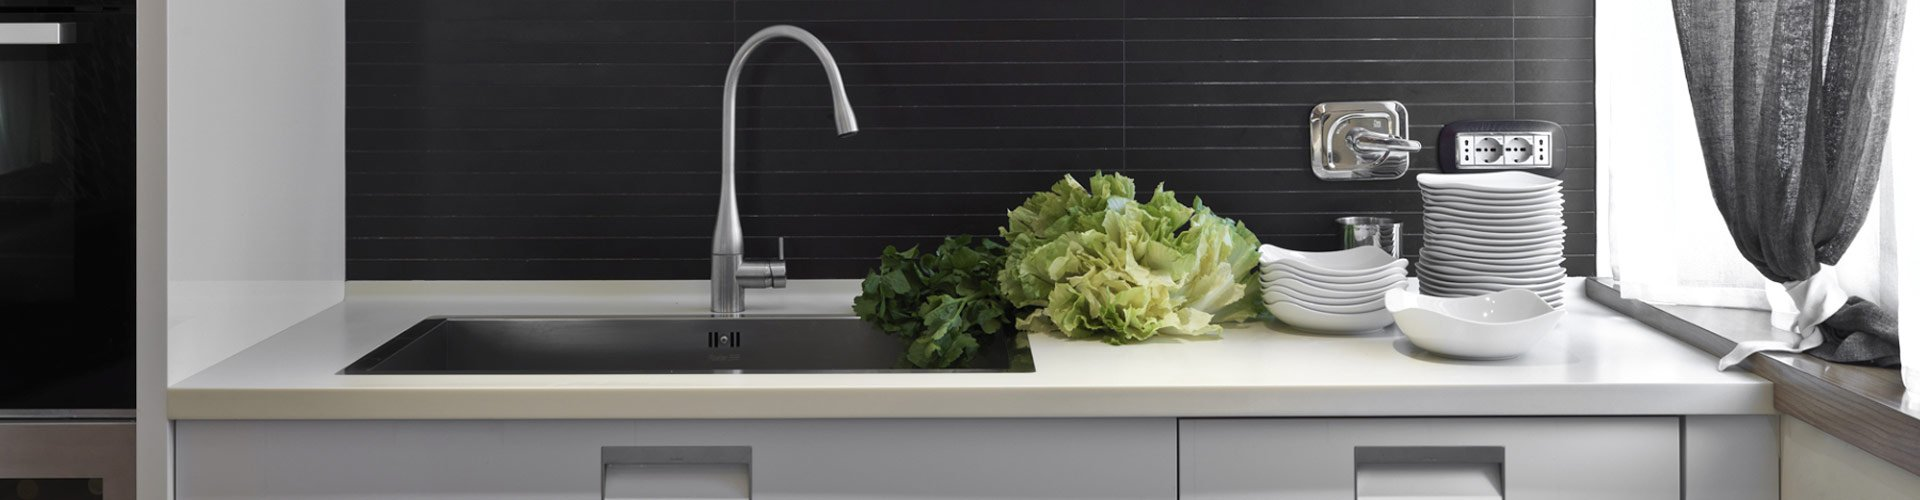 Best Pull-Down Kitchen Faucets